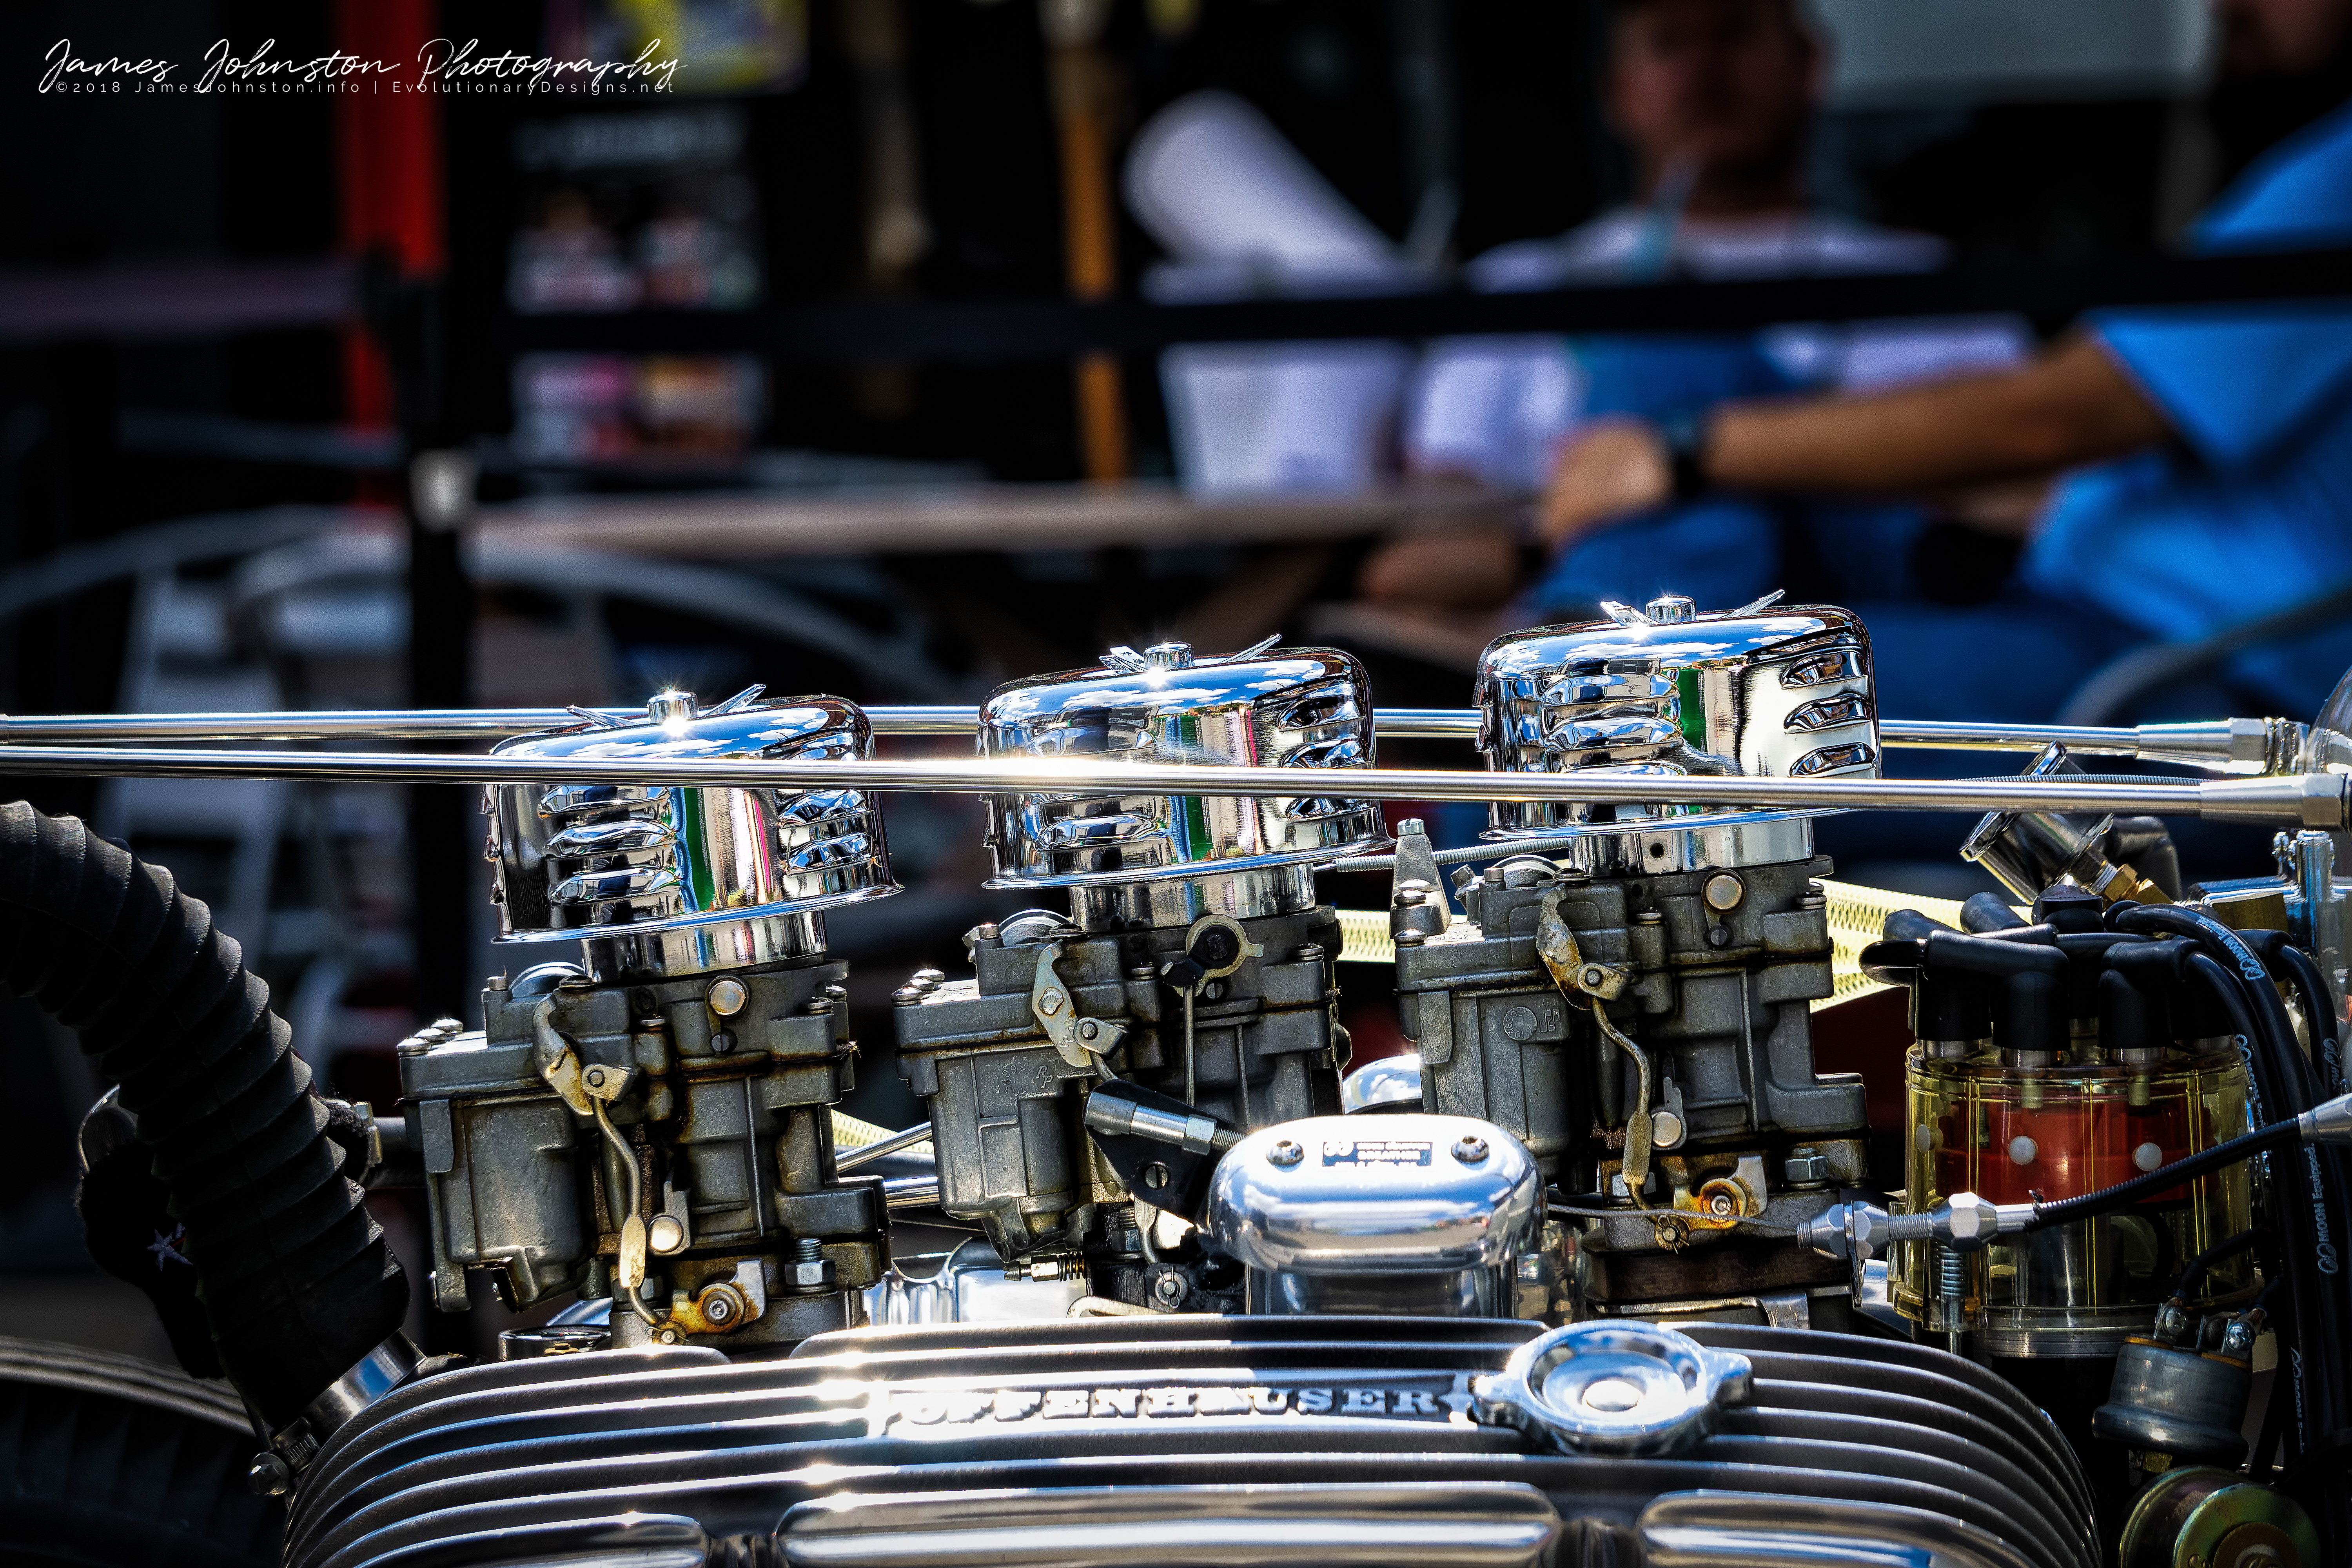 More Pictures From The Invasion Car Show Deep Ellum Dallas - Texas metal car show